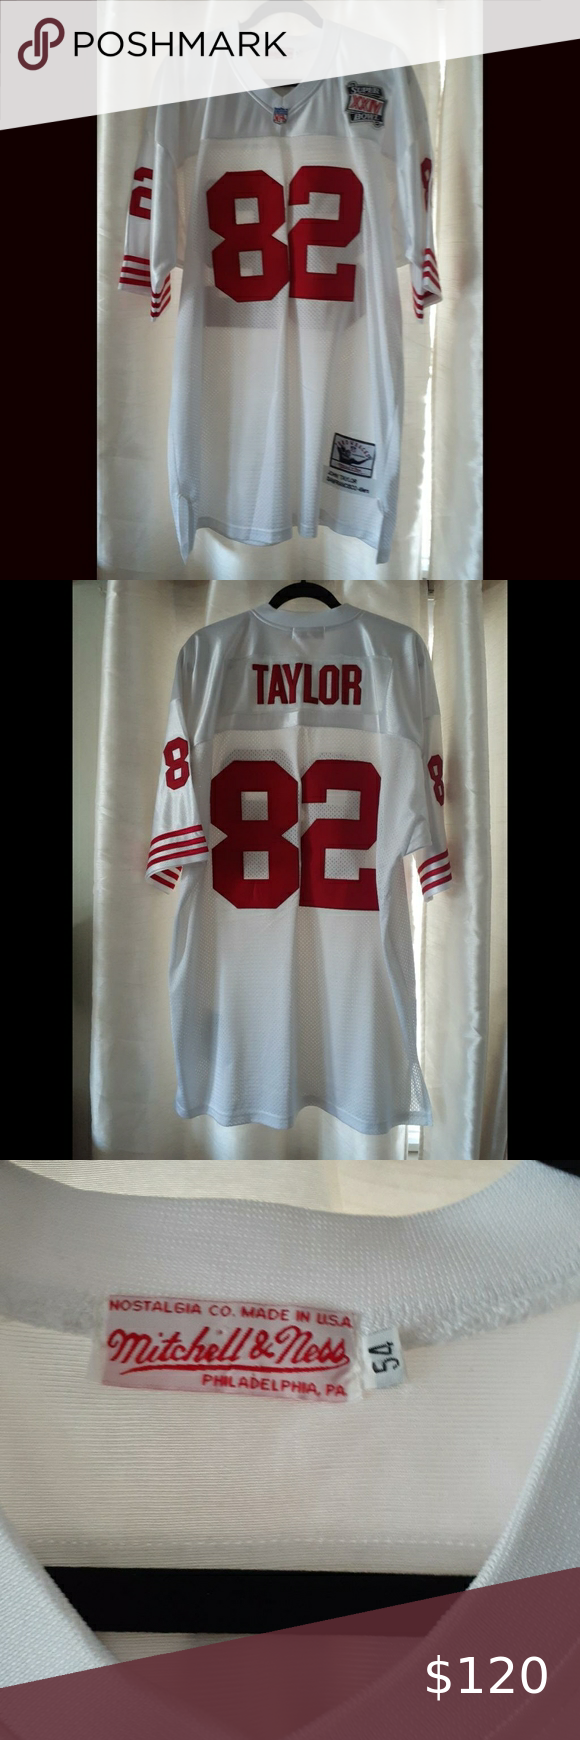 San Francisco 49ers Throwback Superbowl Jersey San Francisco 49ers Throwback Jersey Mitchell Ness Xxiv John Taylor I In 2020 Clothes Design Fashion Fashion Design